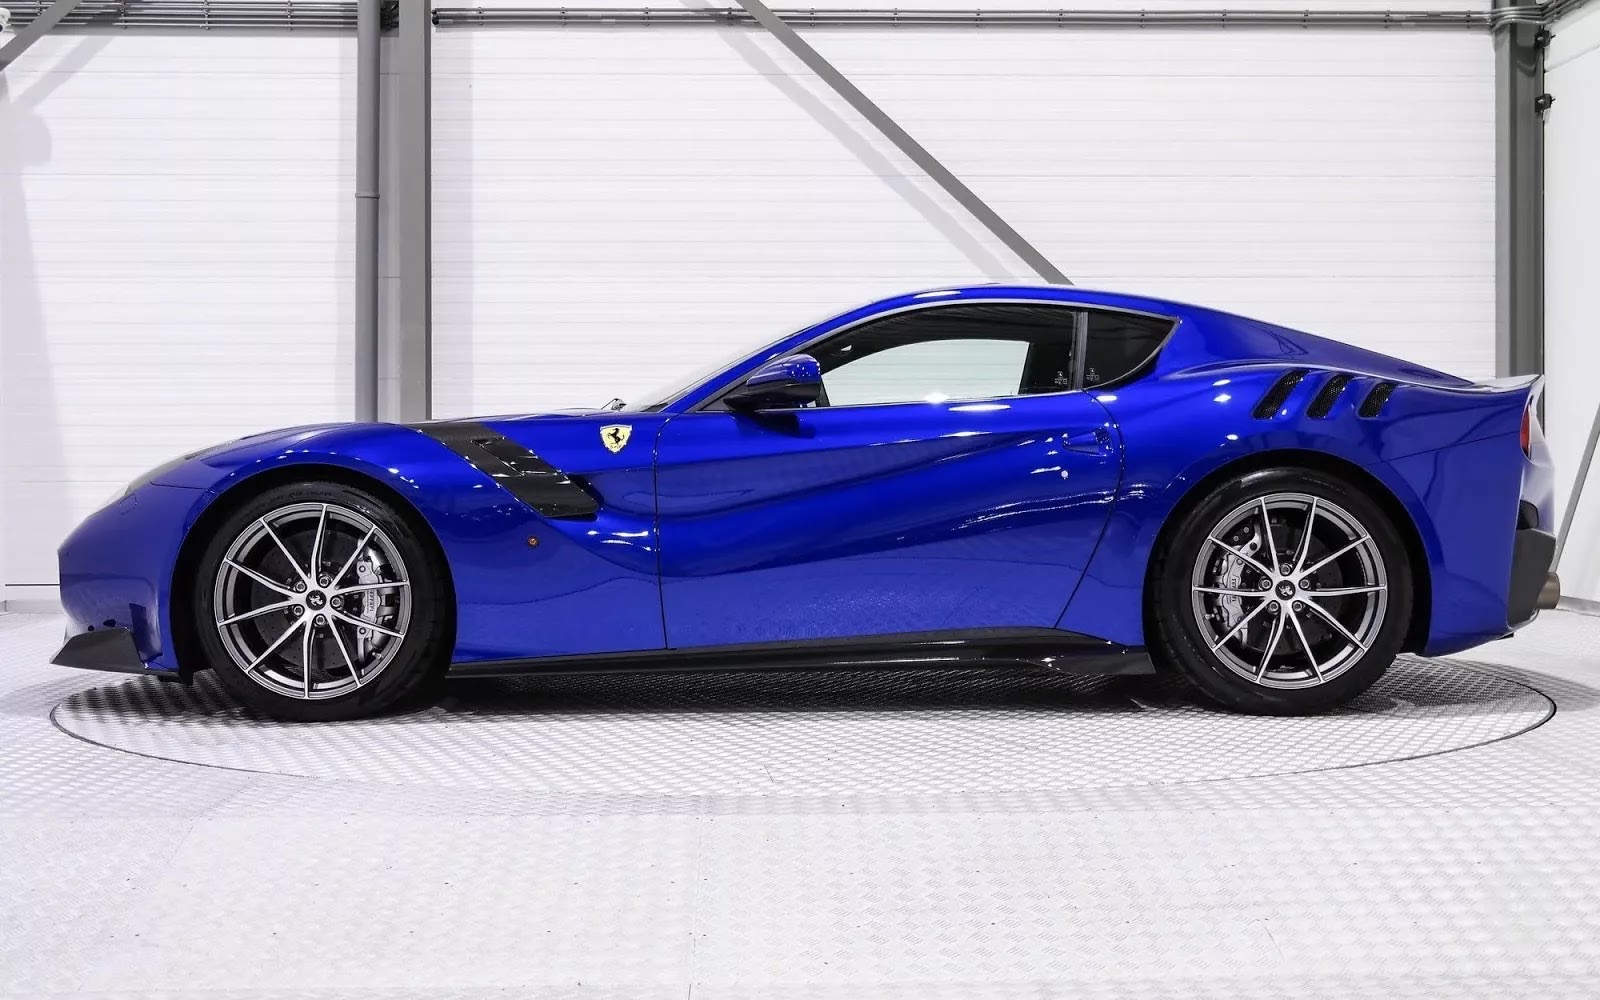 One-Off_Electric_Blue_Ferrari_F12tdf_02